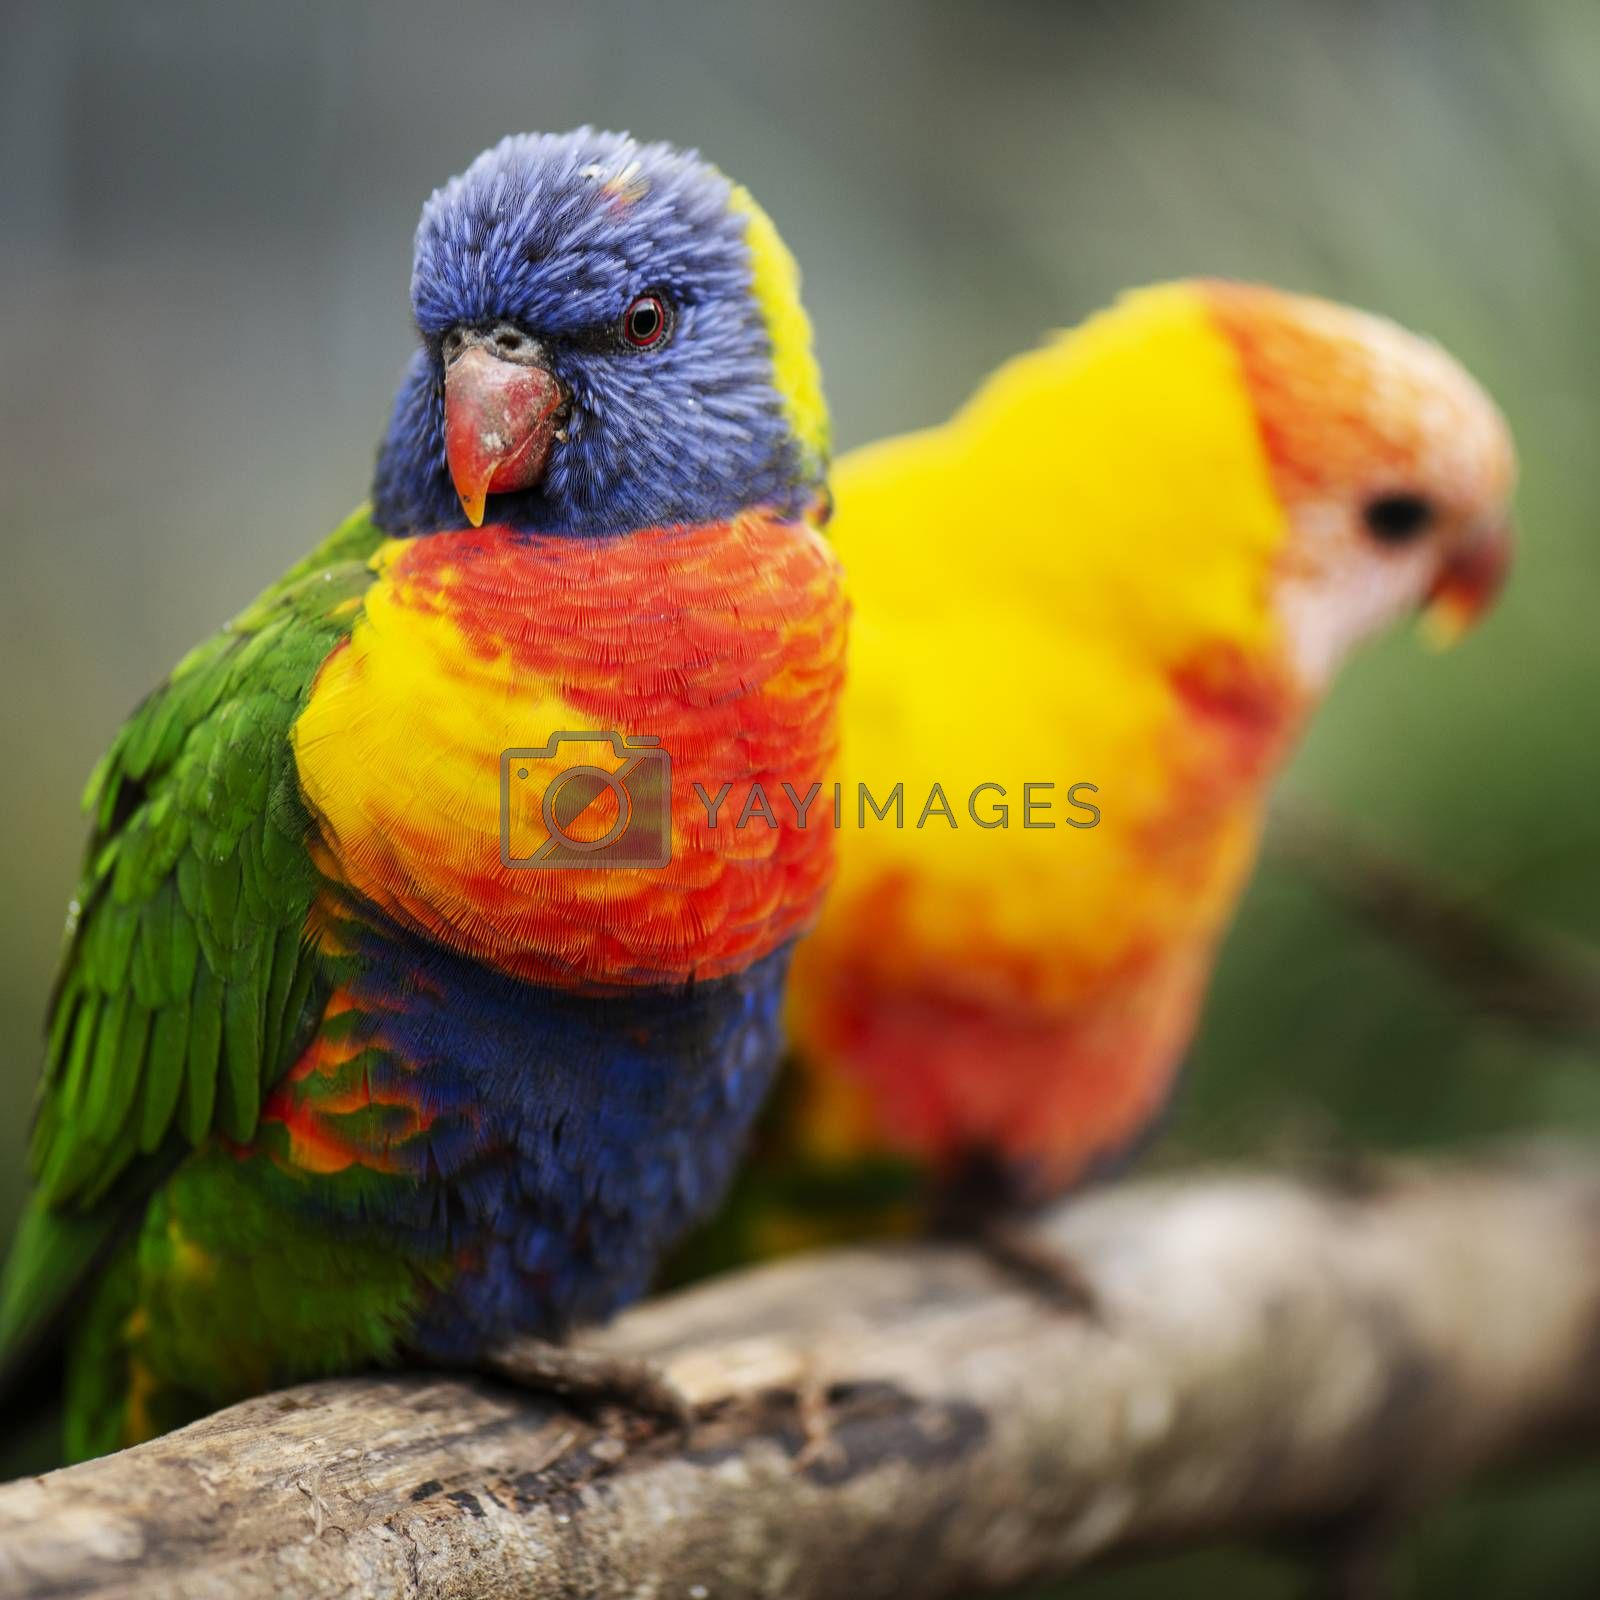 Rainbow lorikeet out in nature during the day.